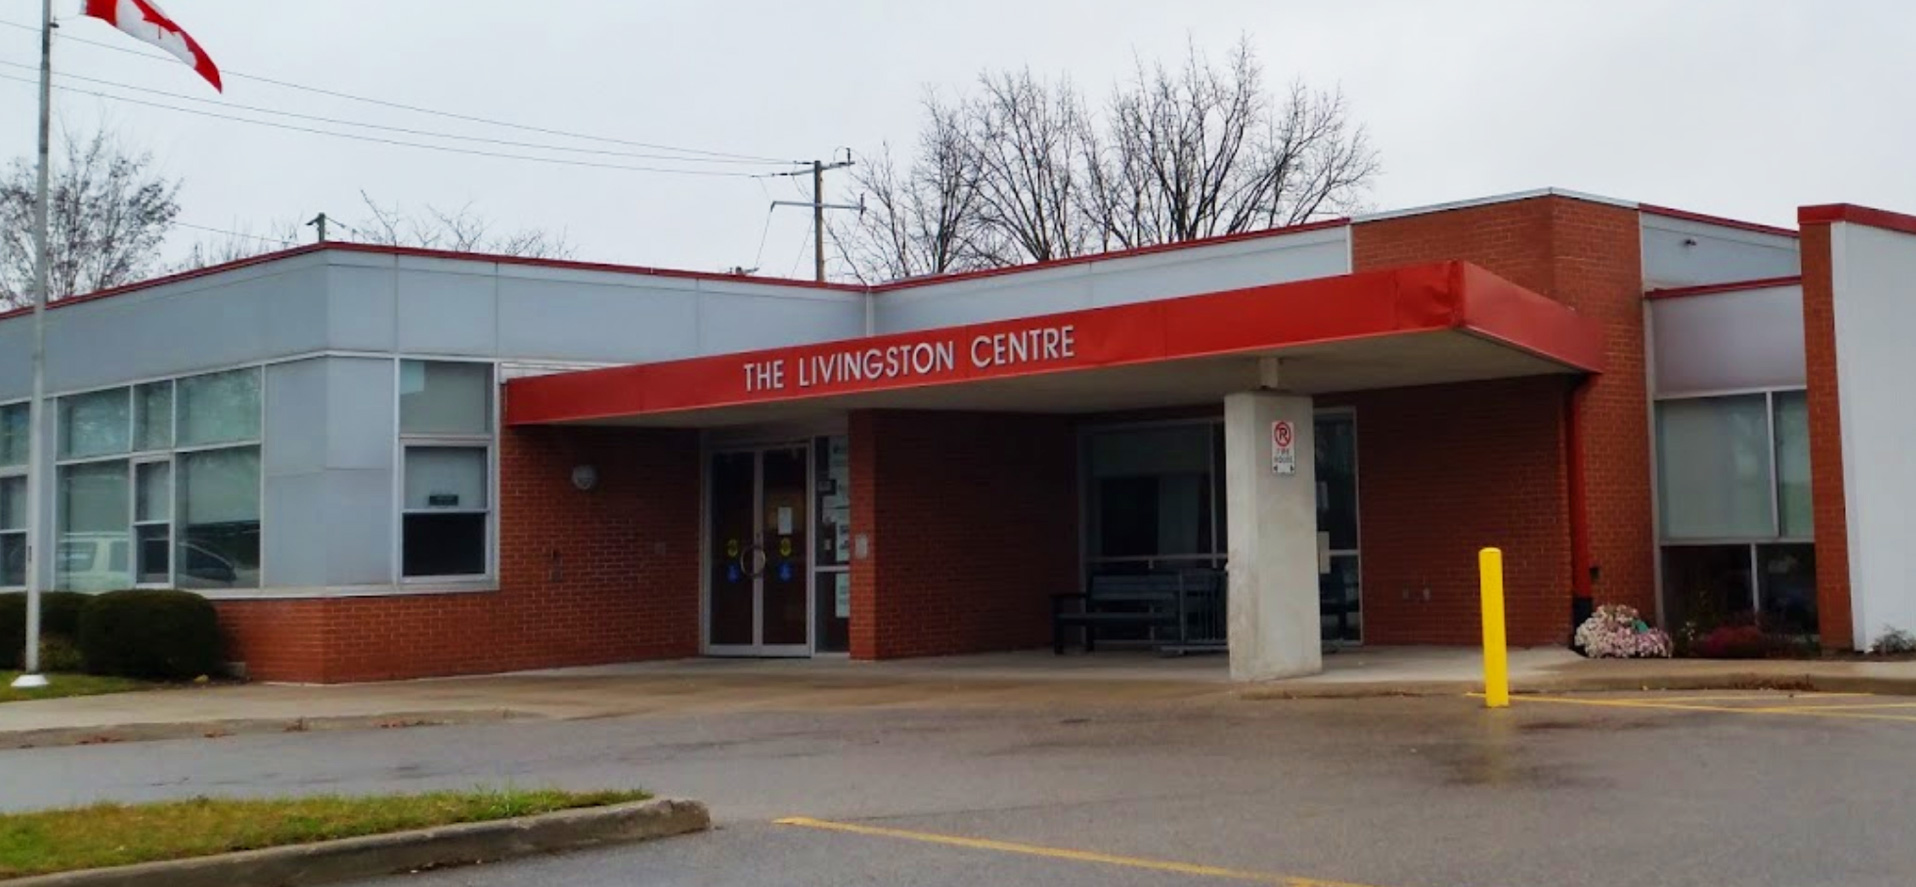 The Livingston Centre